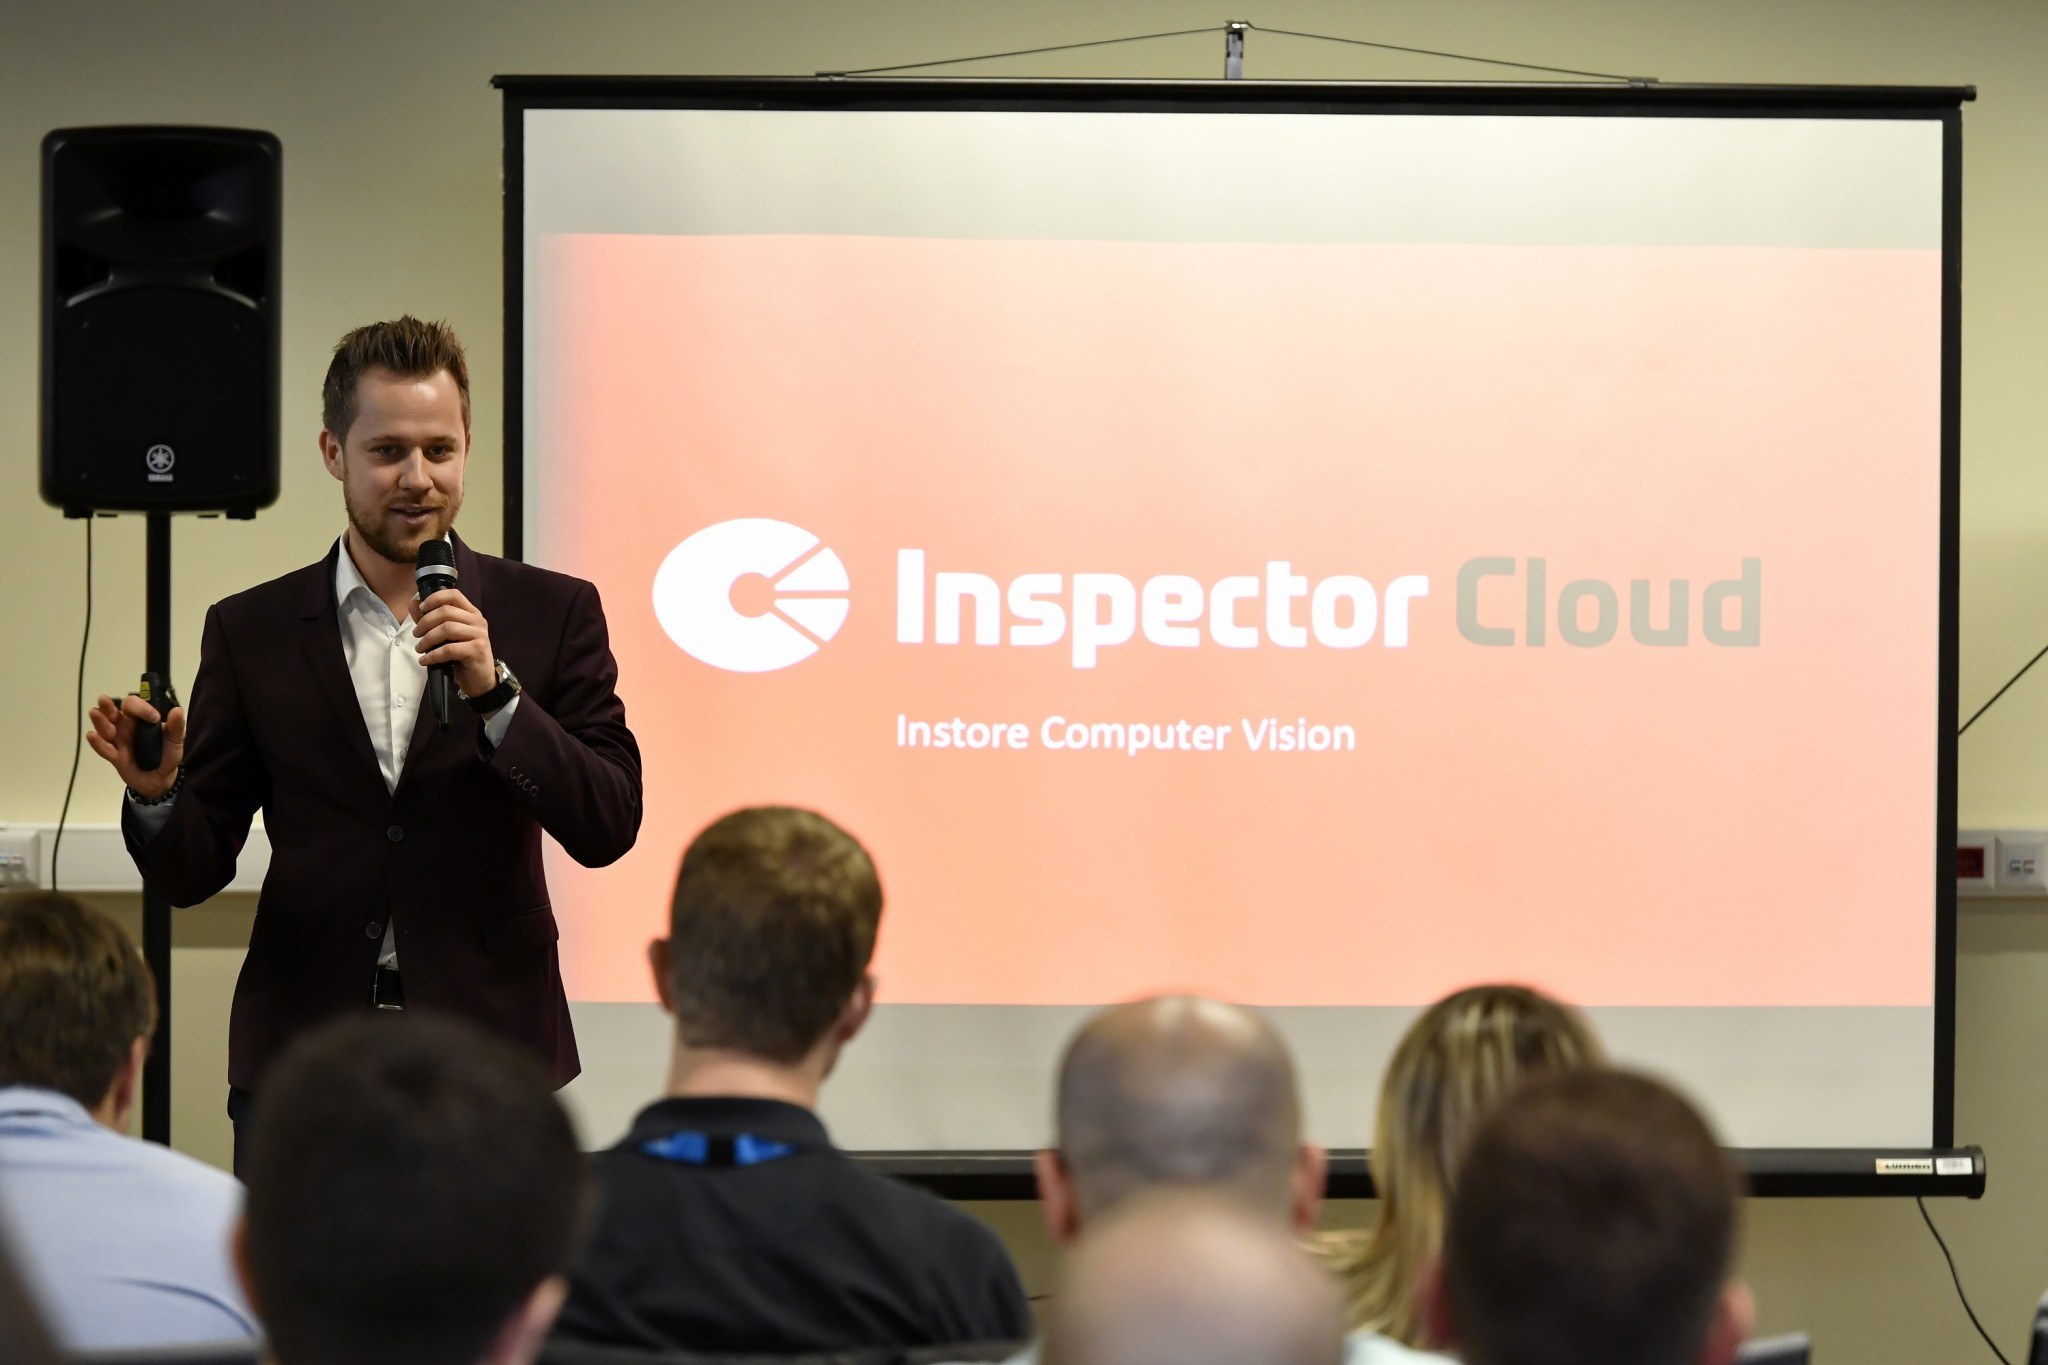 Inspector Cloud CEO Alexander Berenov delivers a presentation on the company's offerings. Photo: Skolkovo